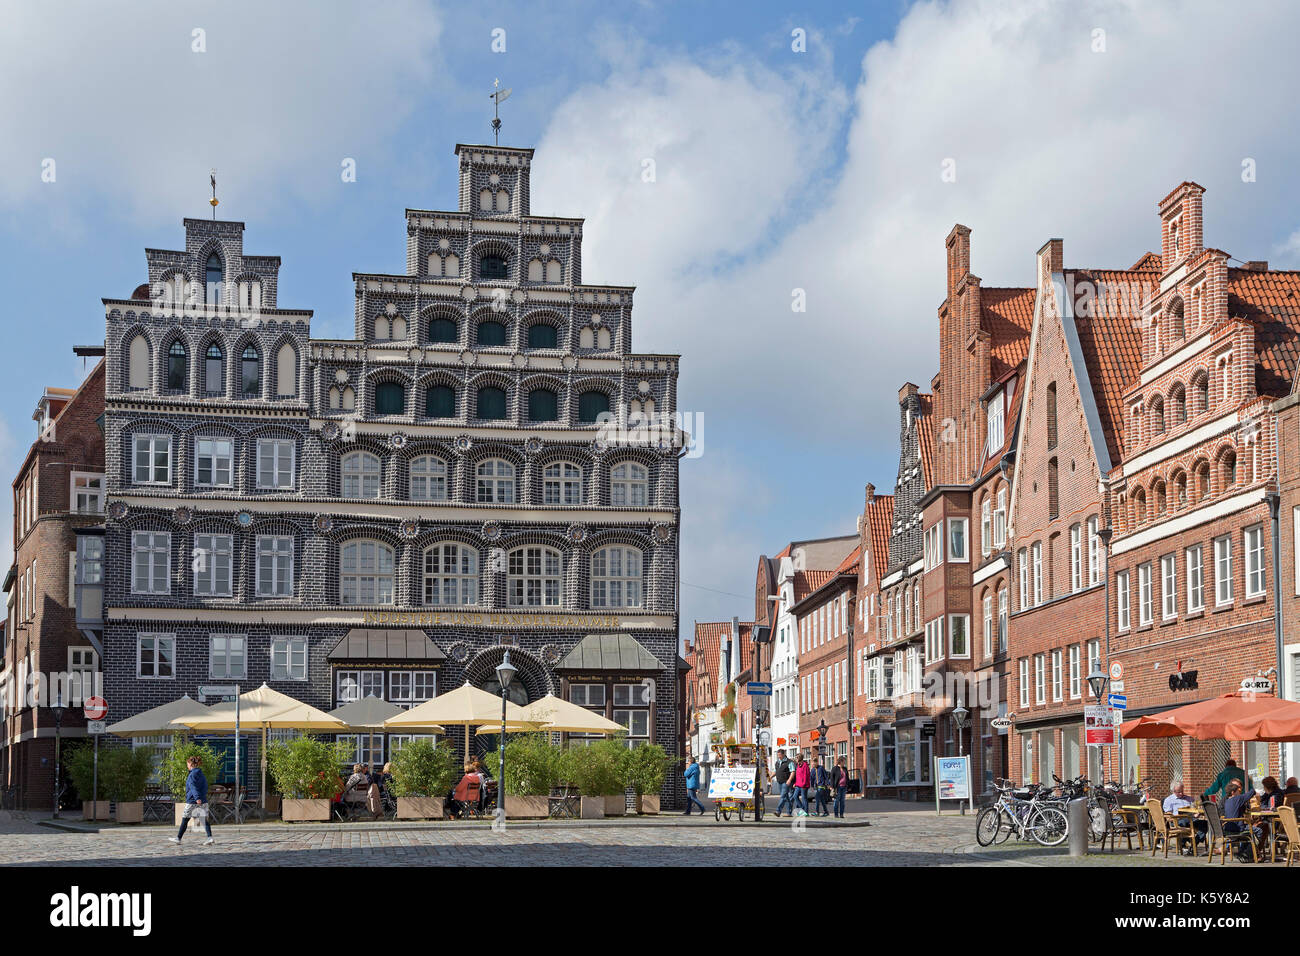 Chambre de commerce et d'industrie, am sande, Lunebourg, Basse-Saxe, Allemagne Photo Stock